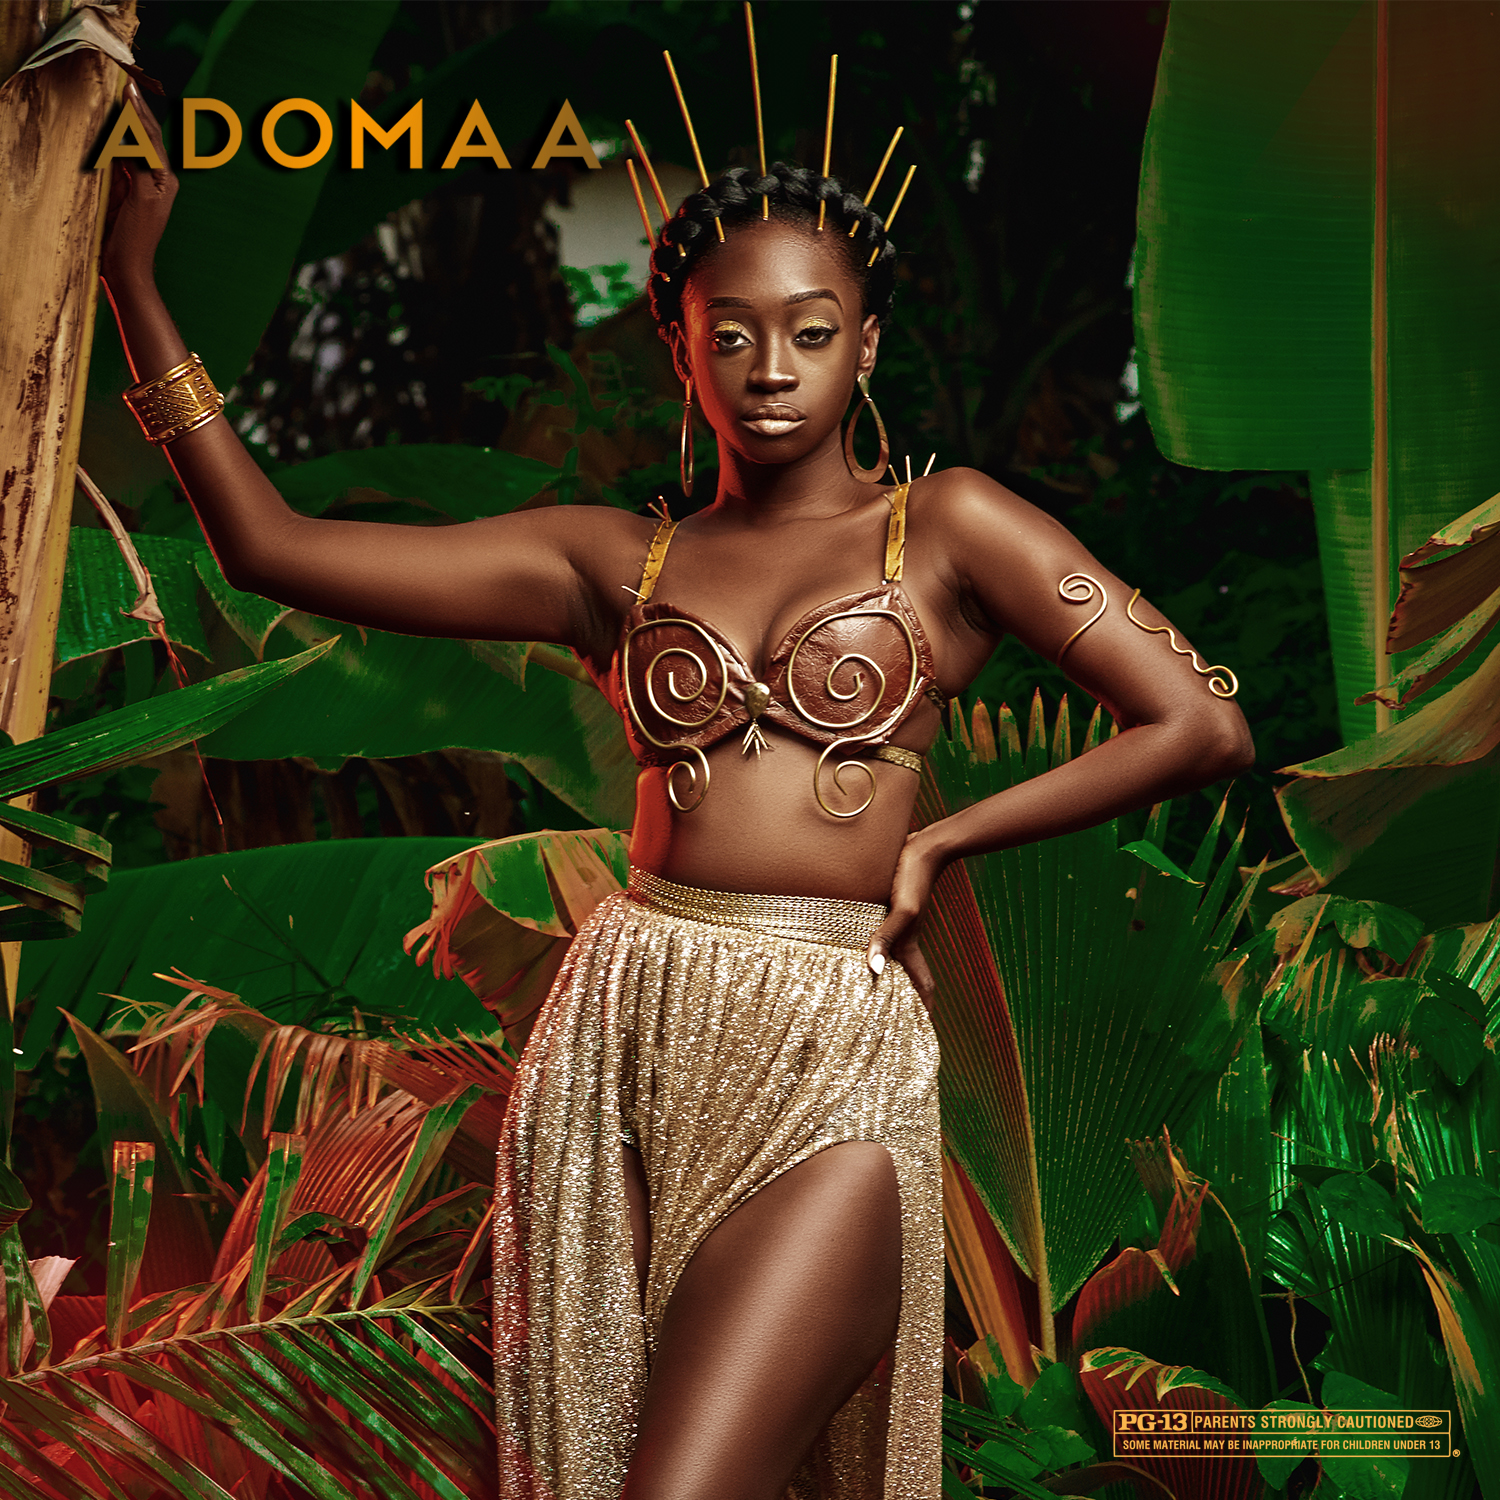 Aftown set to premiere her first EP off 'Adomaa Vs Adomaa' on September 8